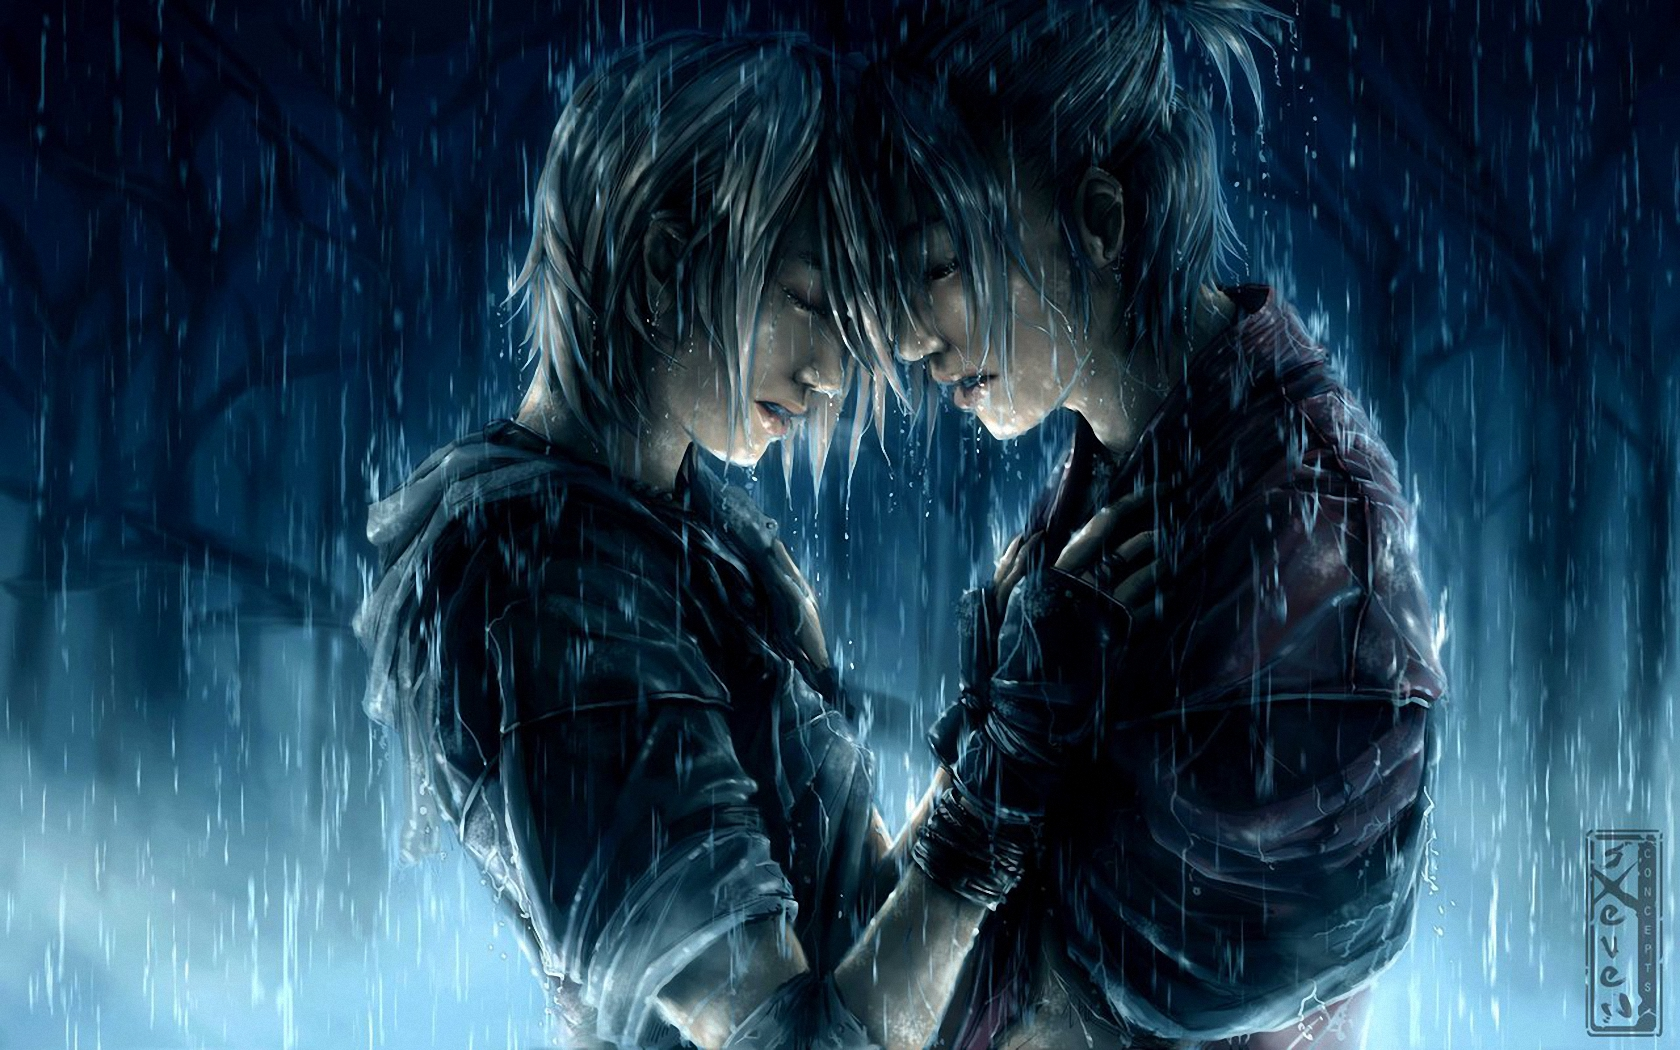 Rain Love Girl Wallpaper : rainy love Wallpaper and Background Image 1680x1050 ID ...